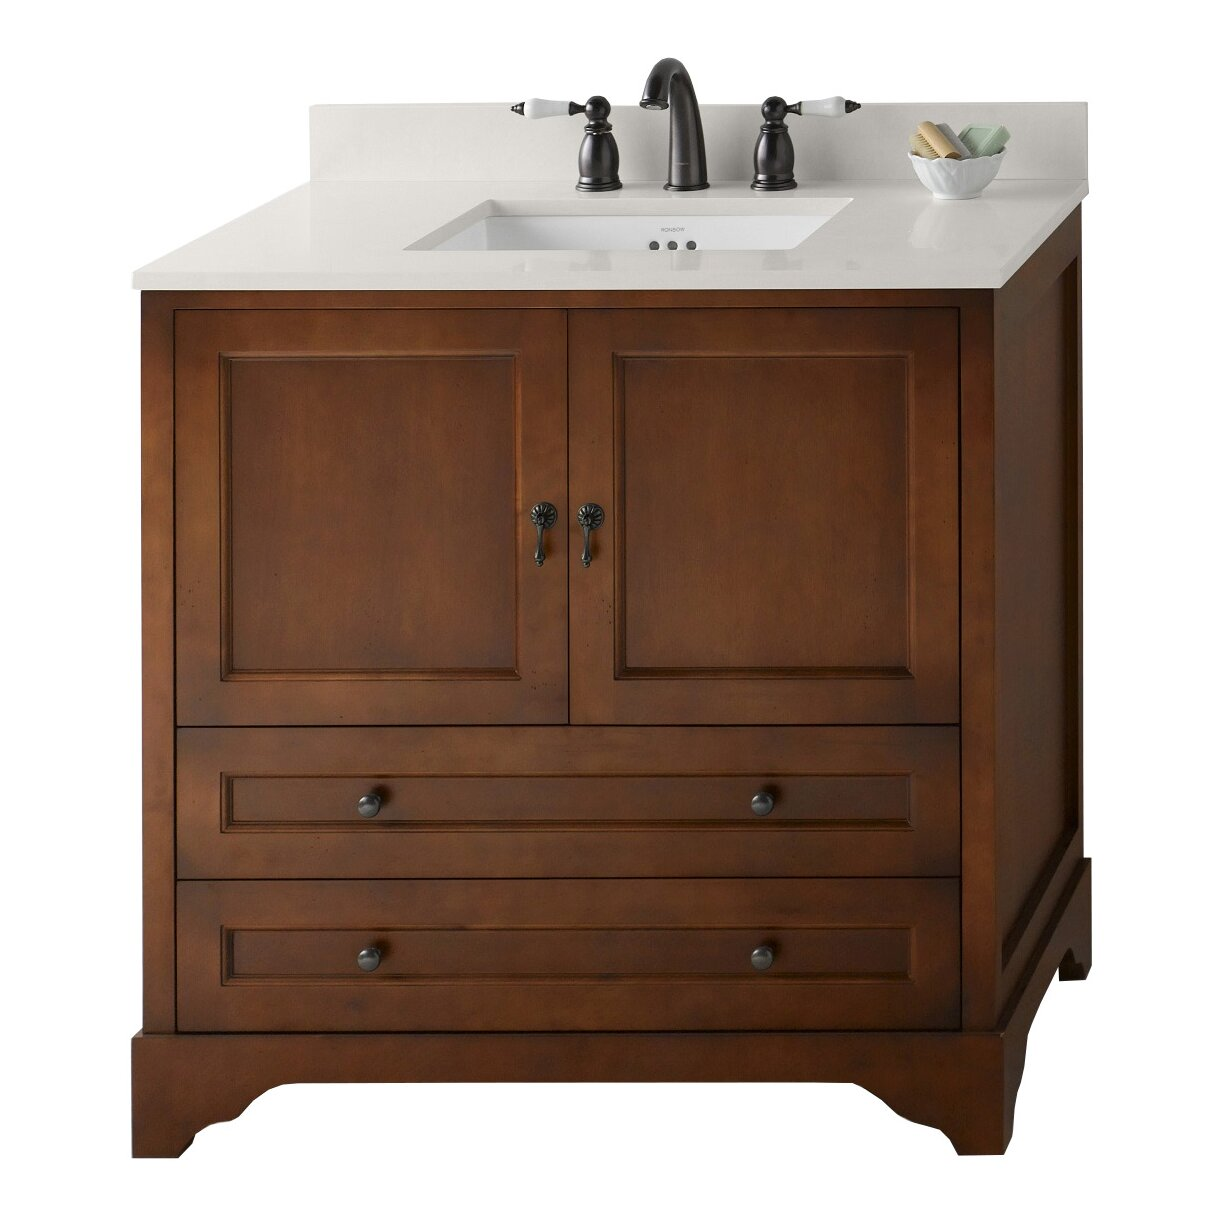 Ronbow milano 36 single bathroom vanity set wayfair for Single bathroom vanity